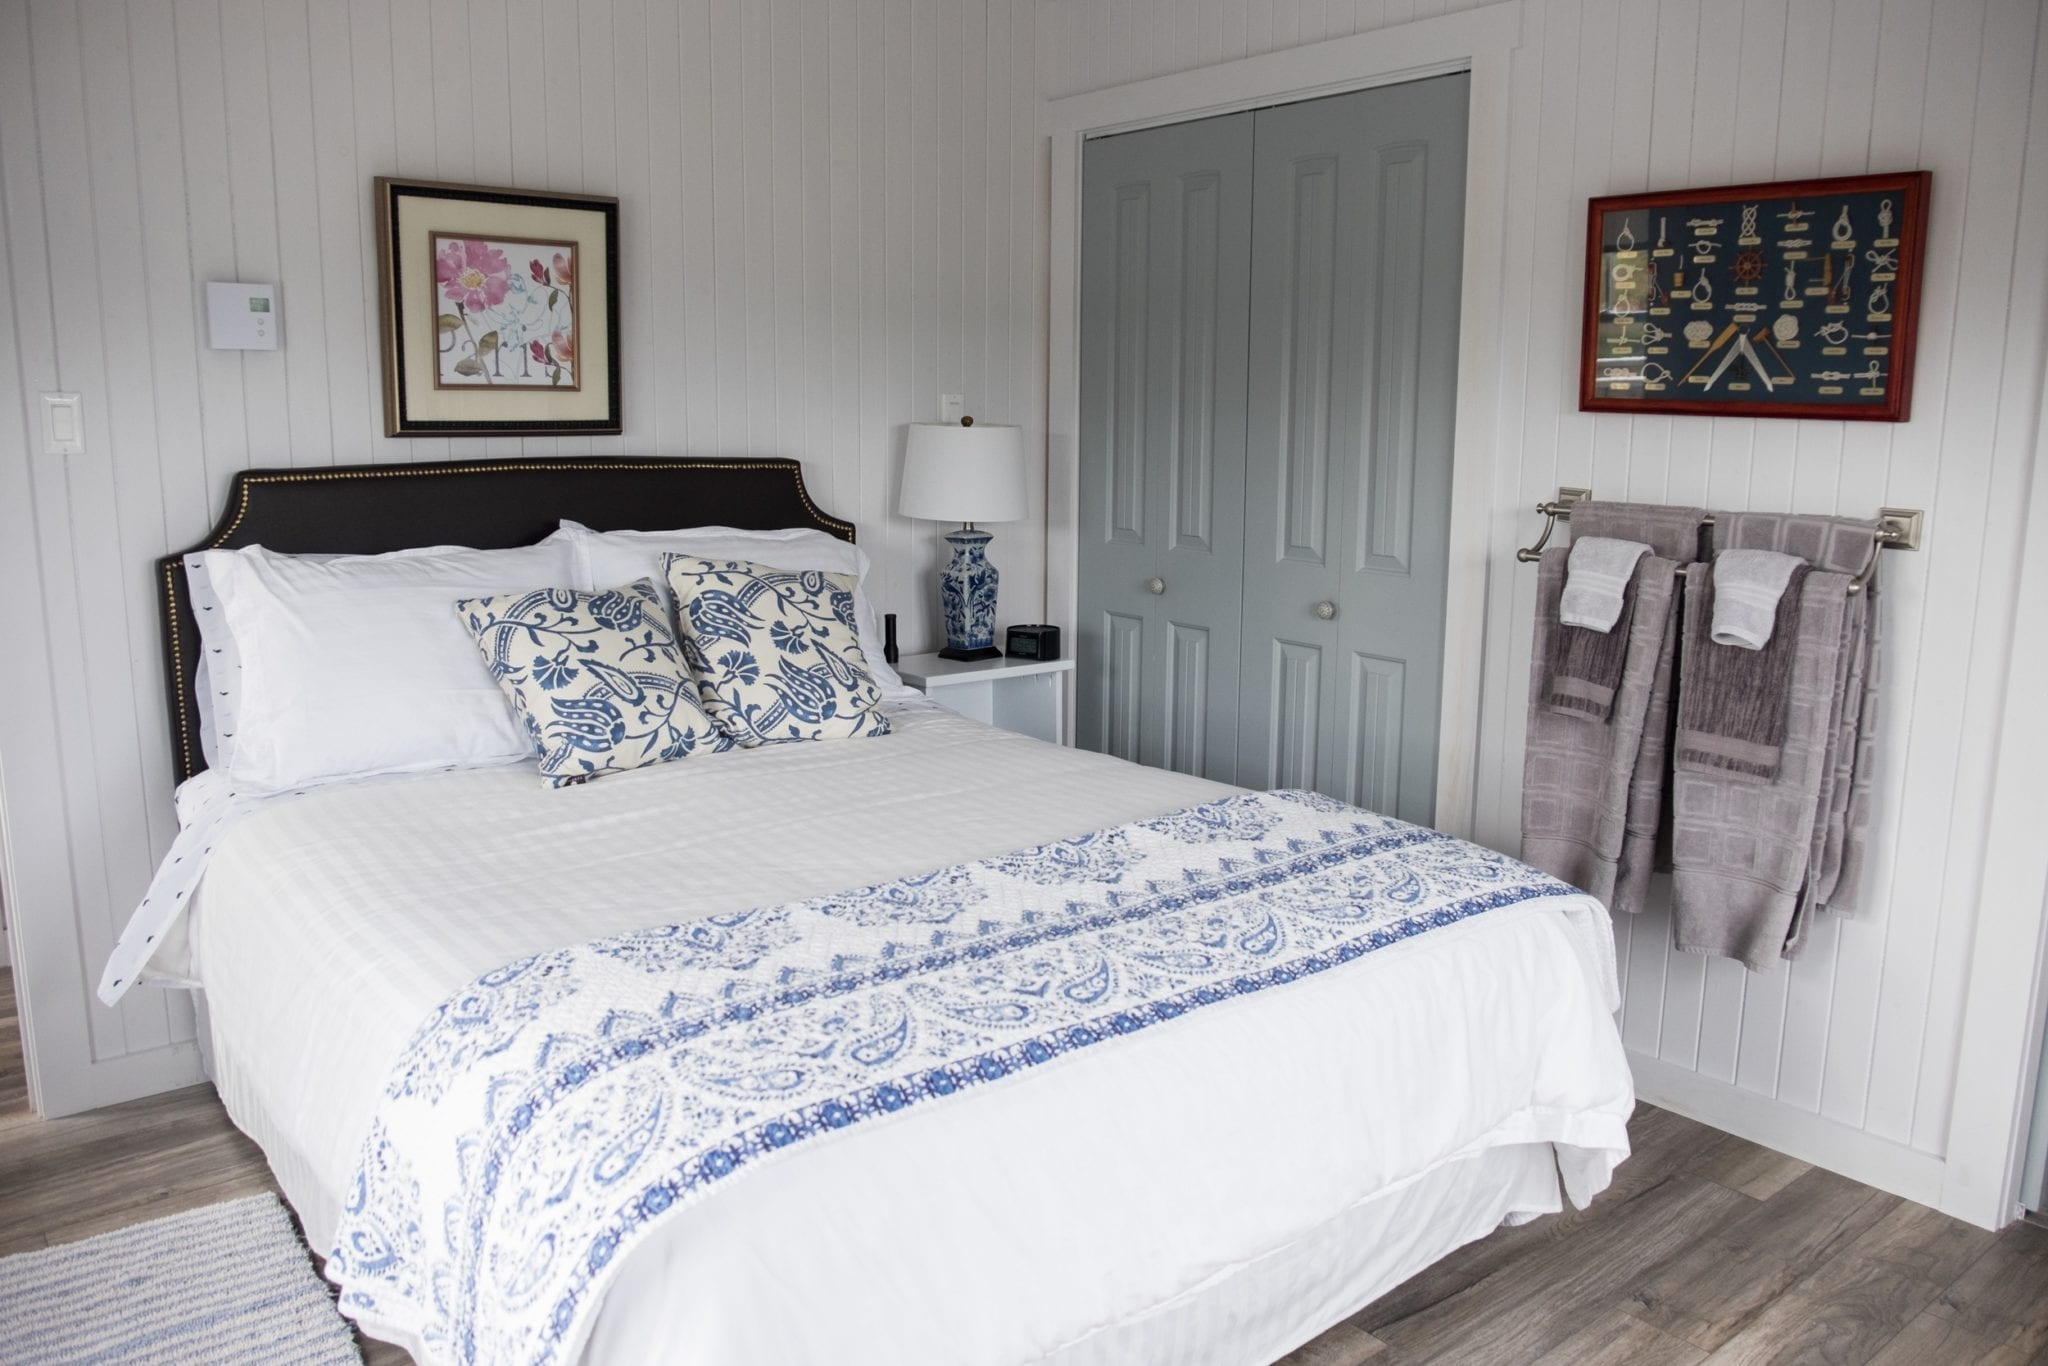 A white queen bed in a white and blue-decorated bedroom at the Artisan Inn.